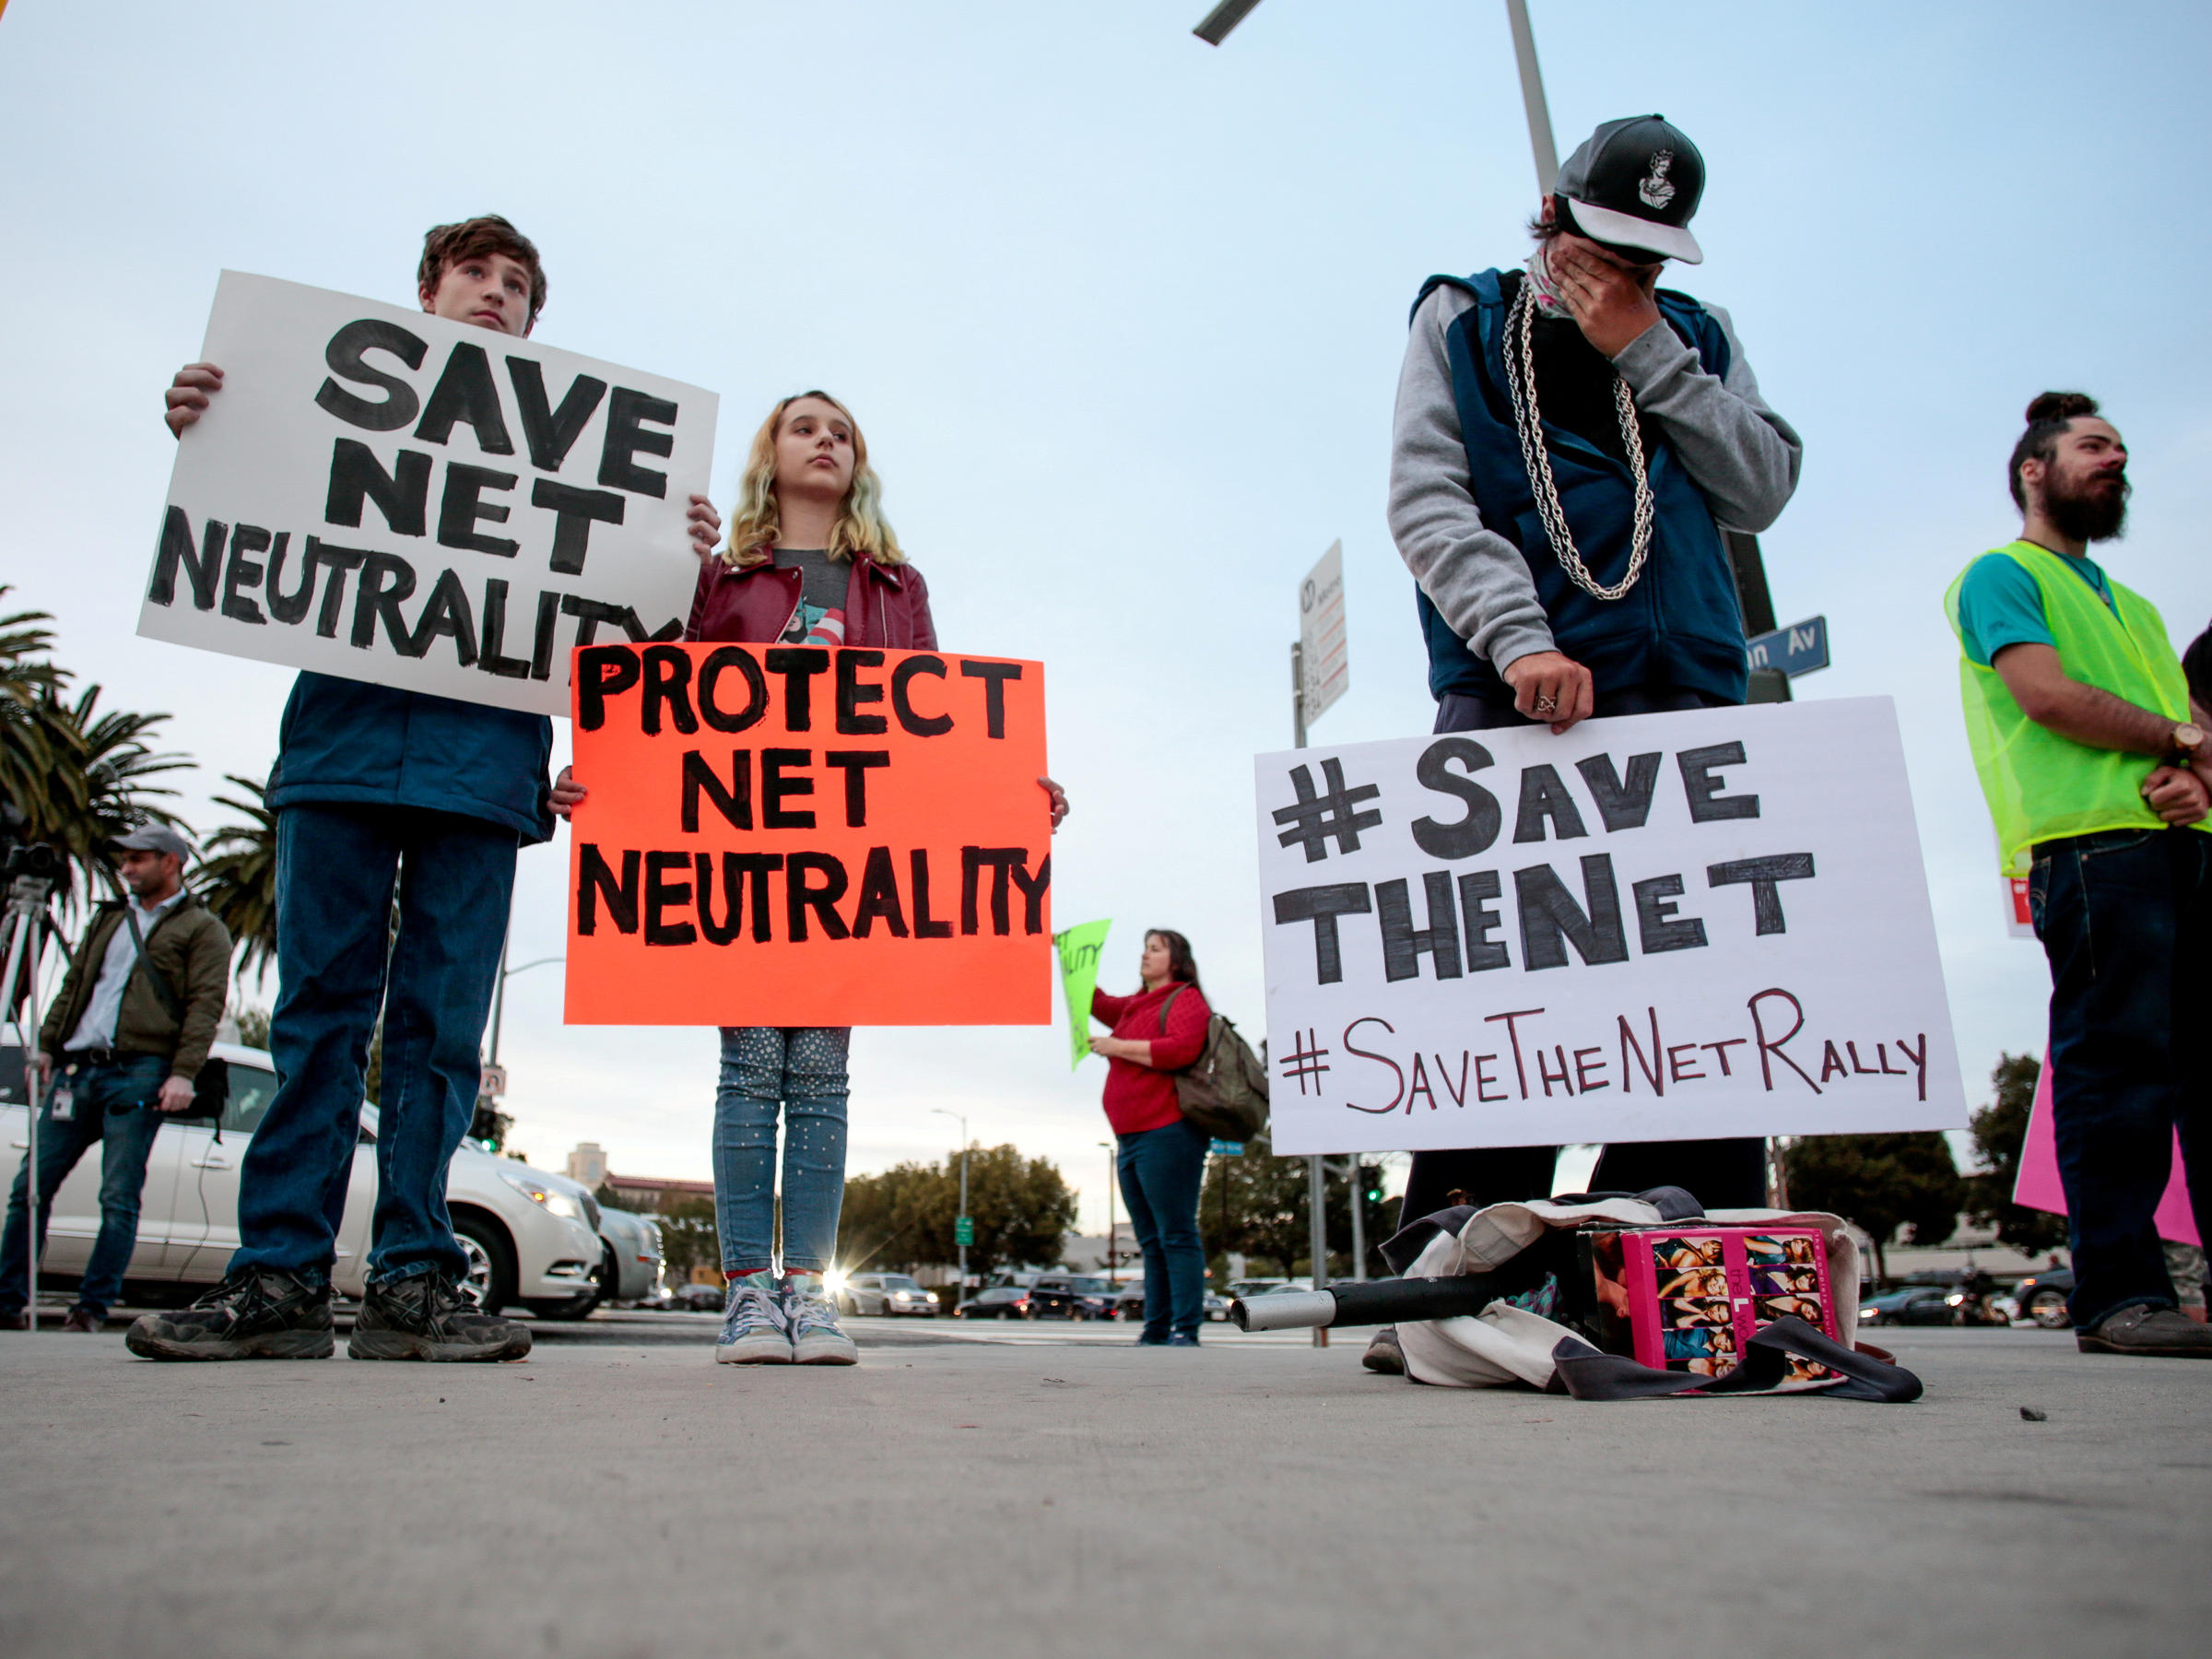 DOJ's lawsuit may delay California's new net neutrality law